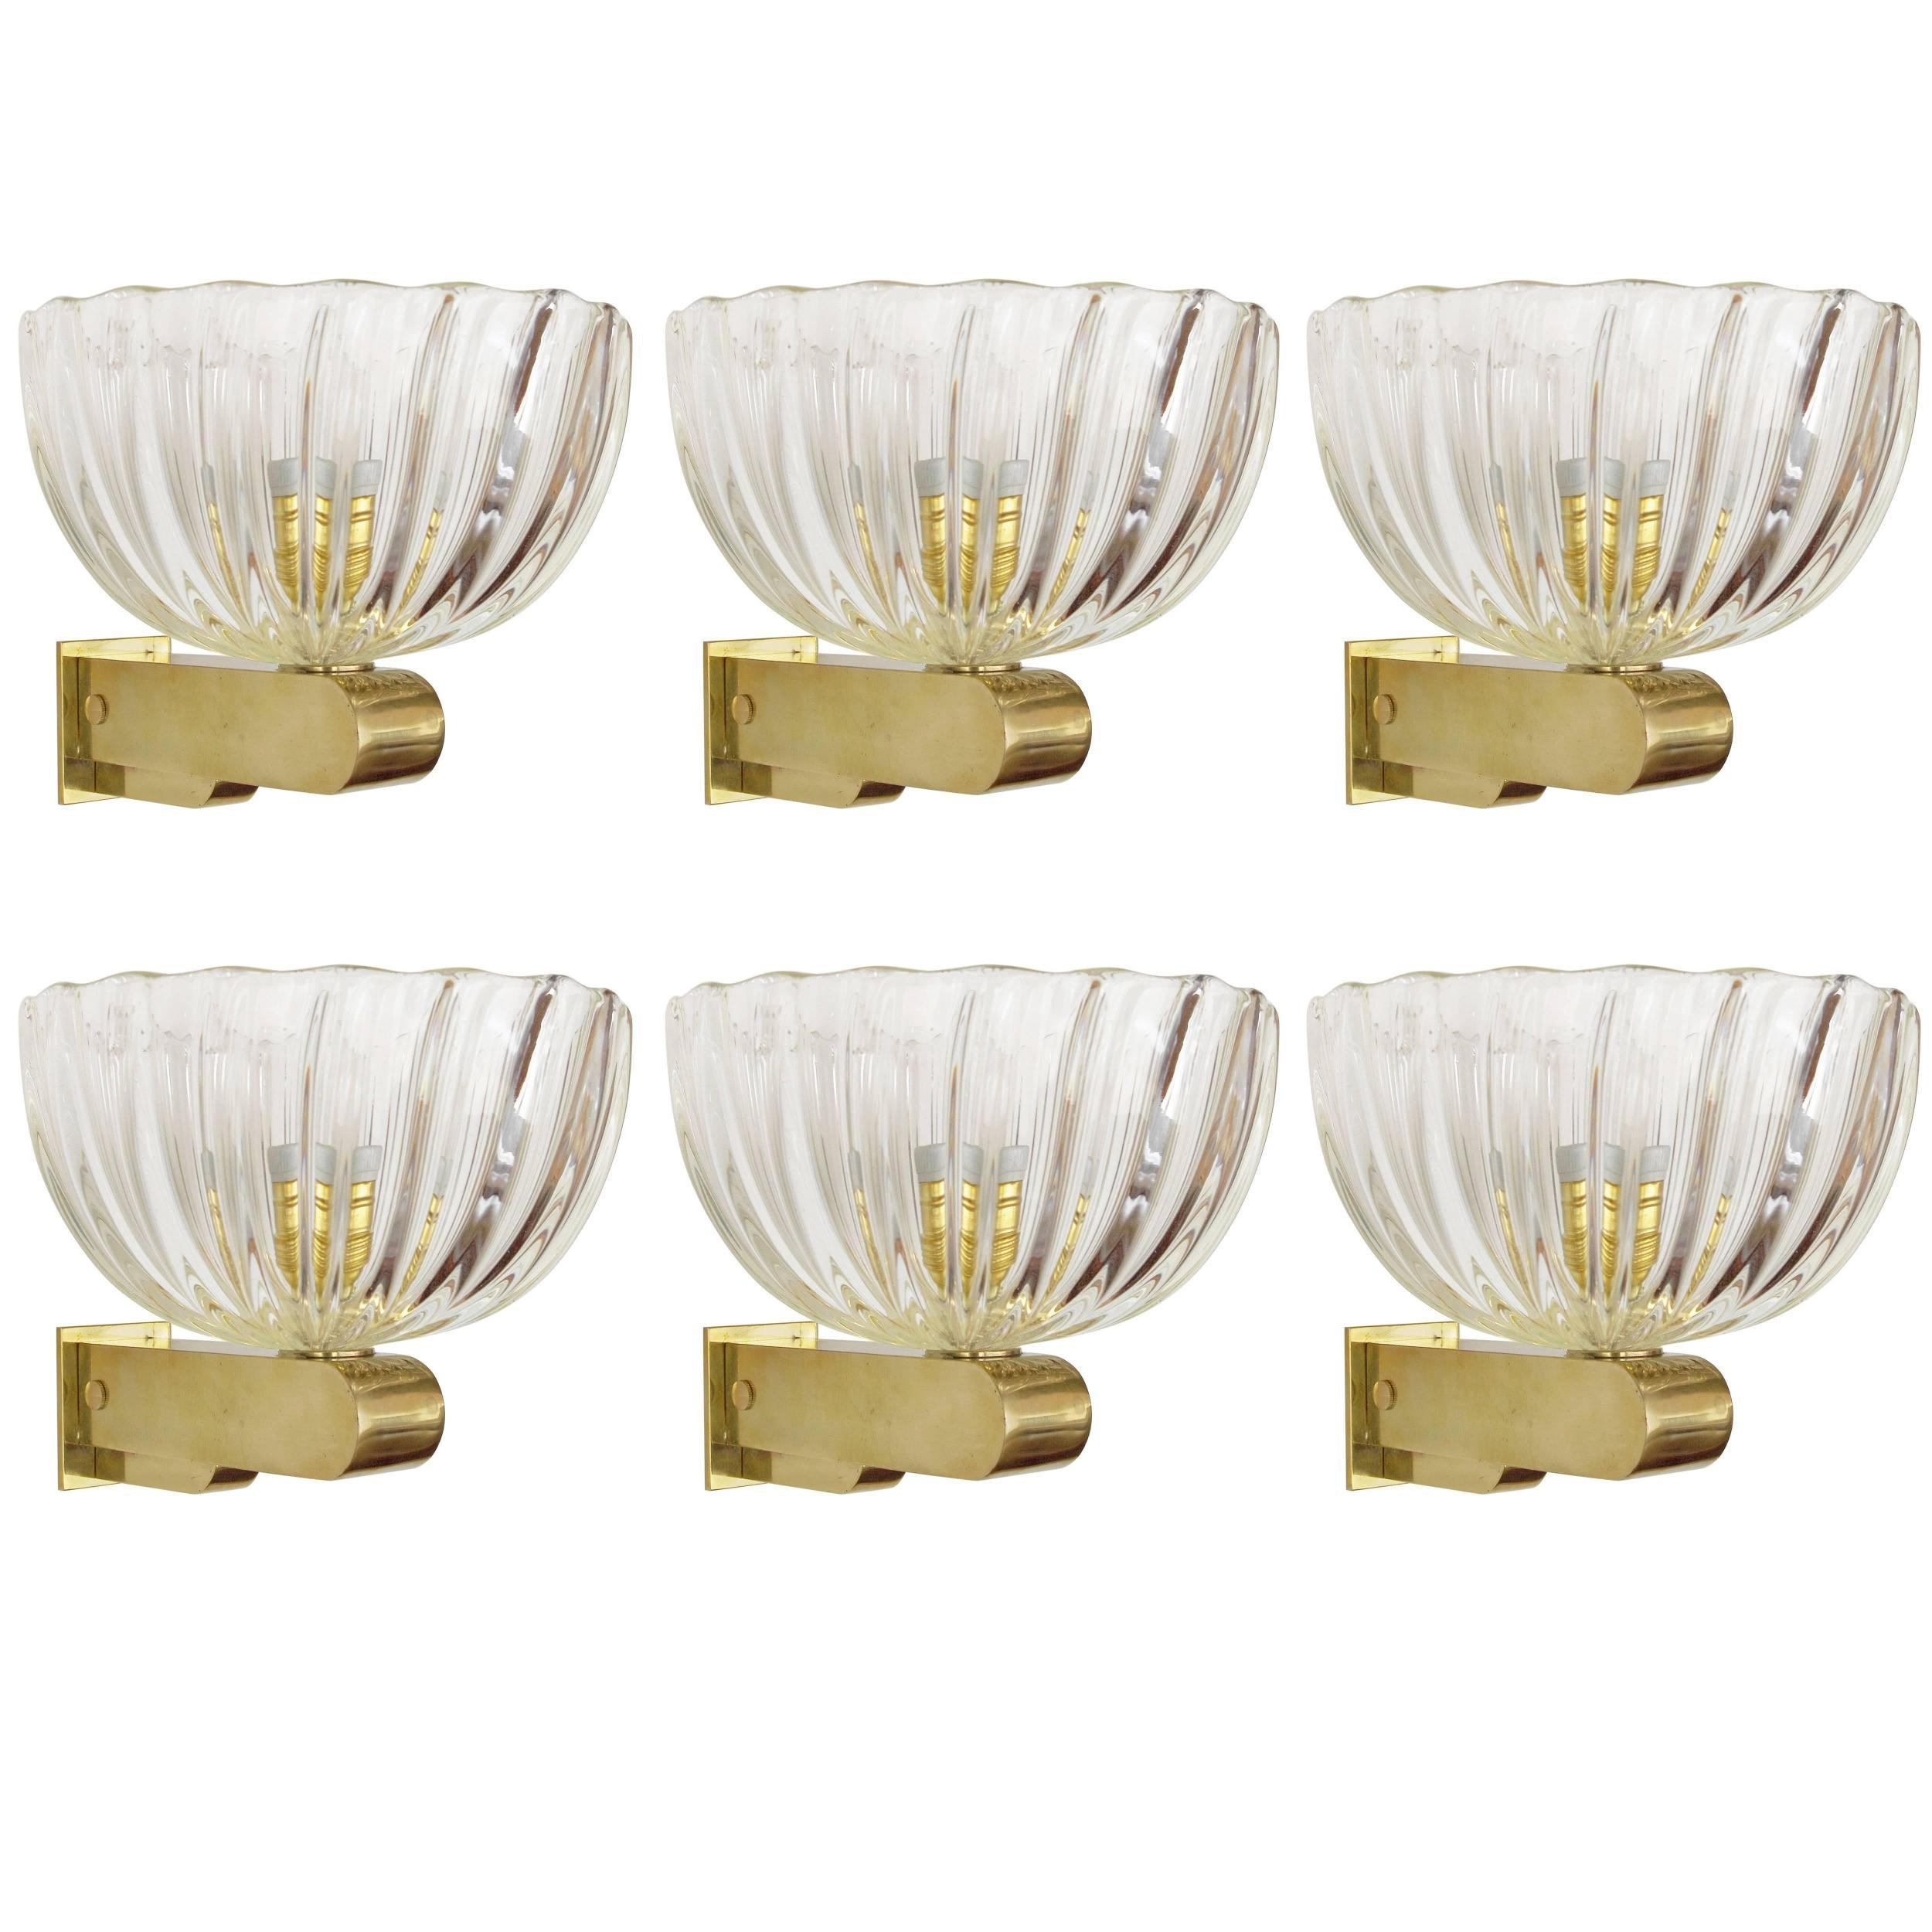 Six Vintage Sconces w/ Clear Murano Glass Designed by Barovier e Toso, 1960s